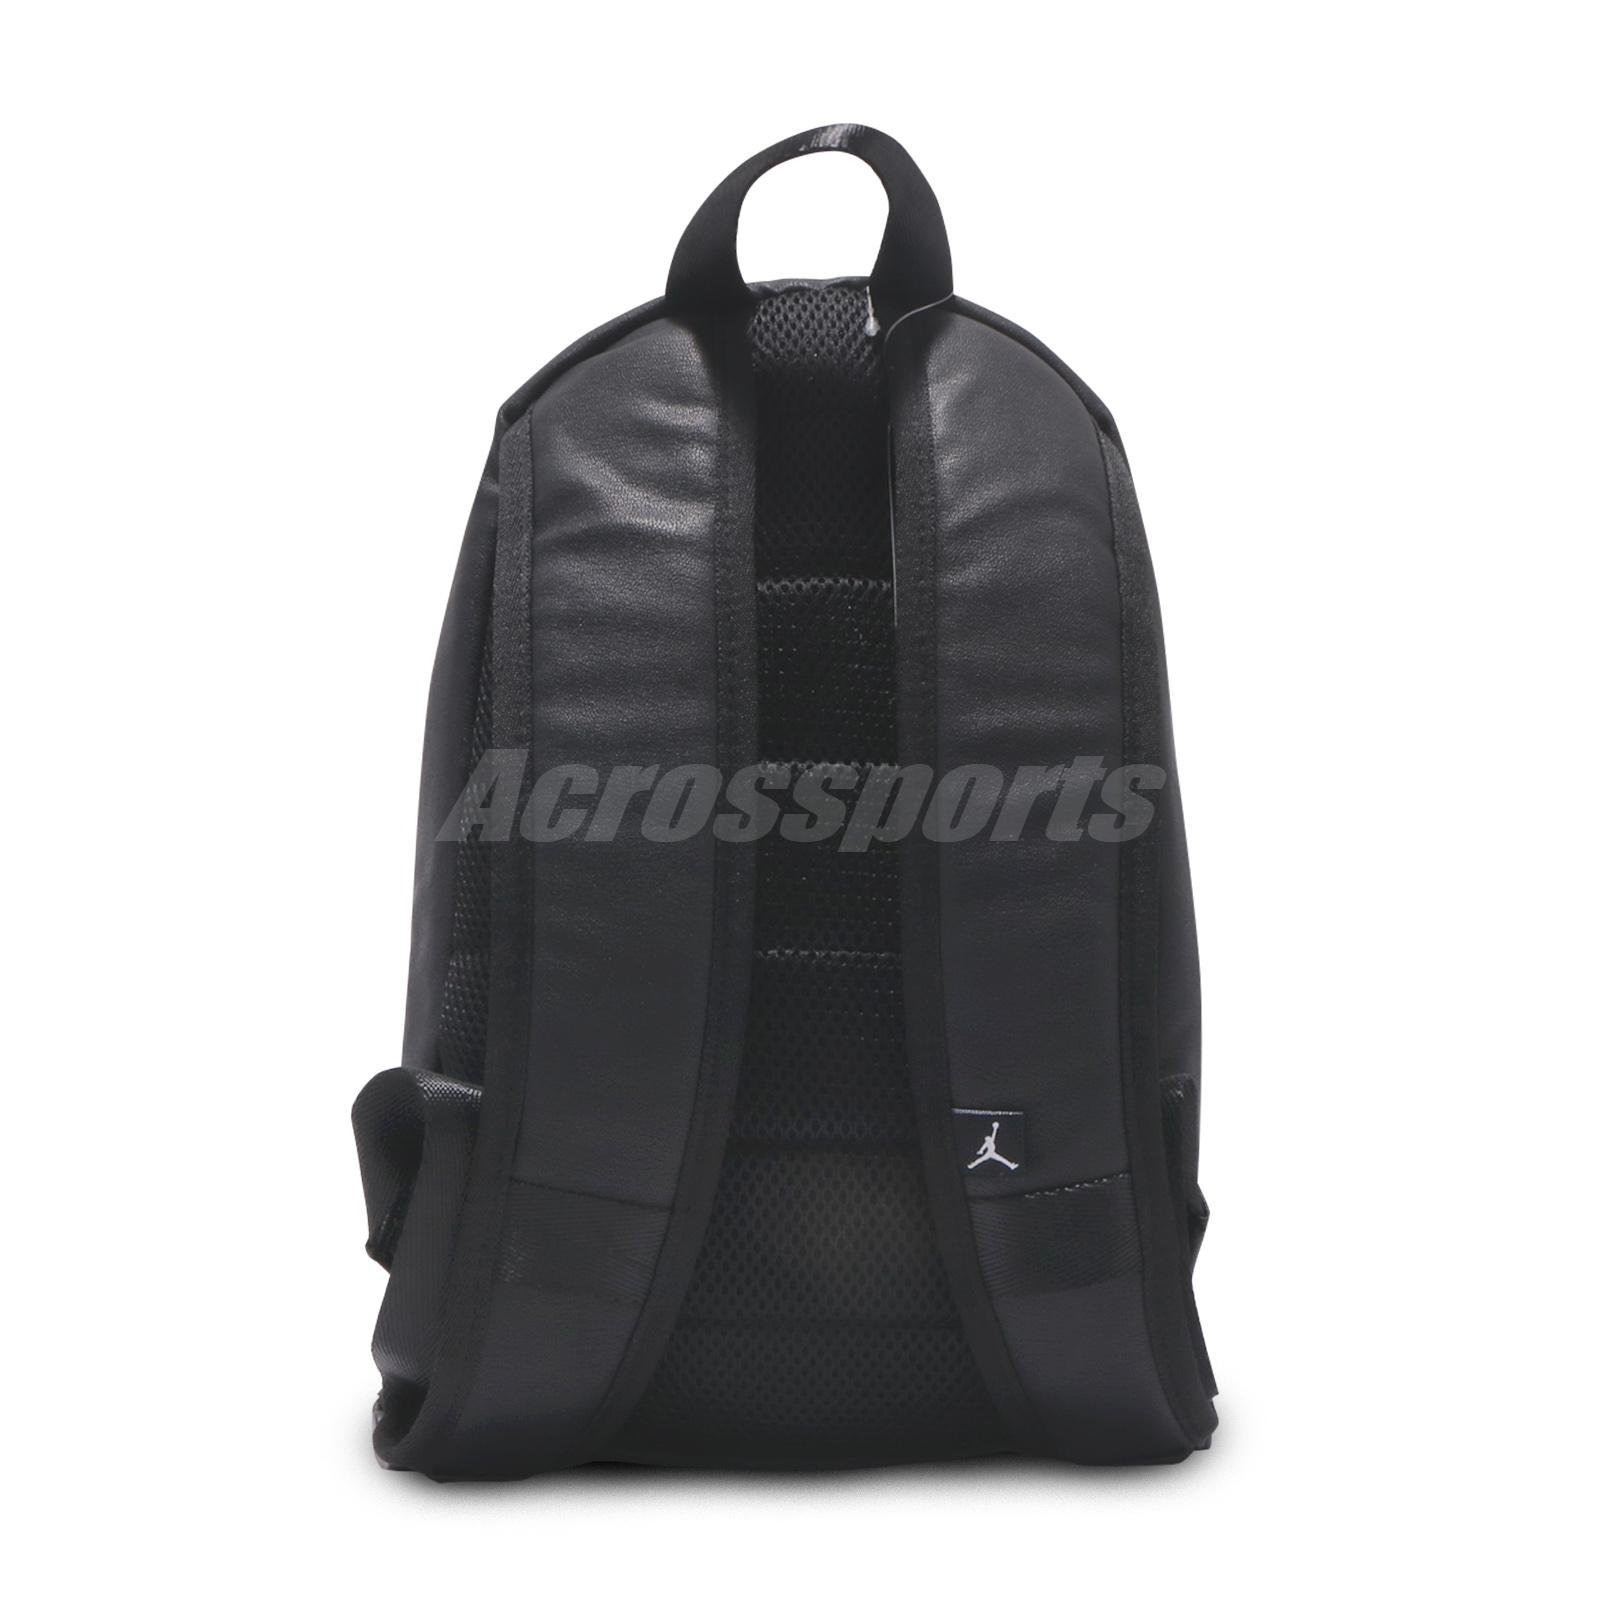 cc0c0cada82192 Nike Jordan Skyline Mini Backpack Black Gold School Bookbag Kid ...